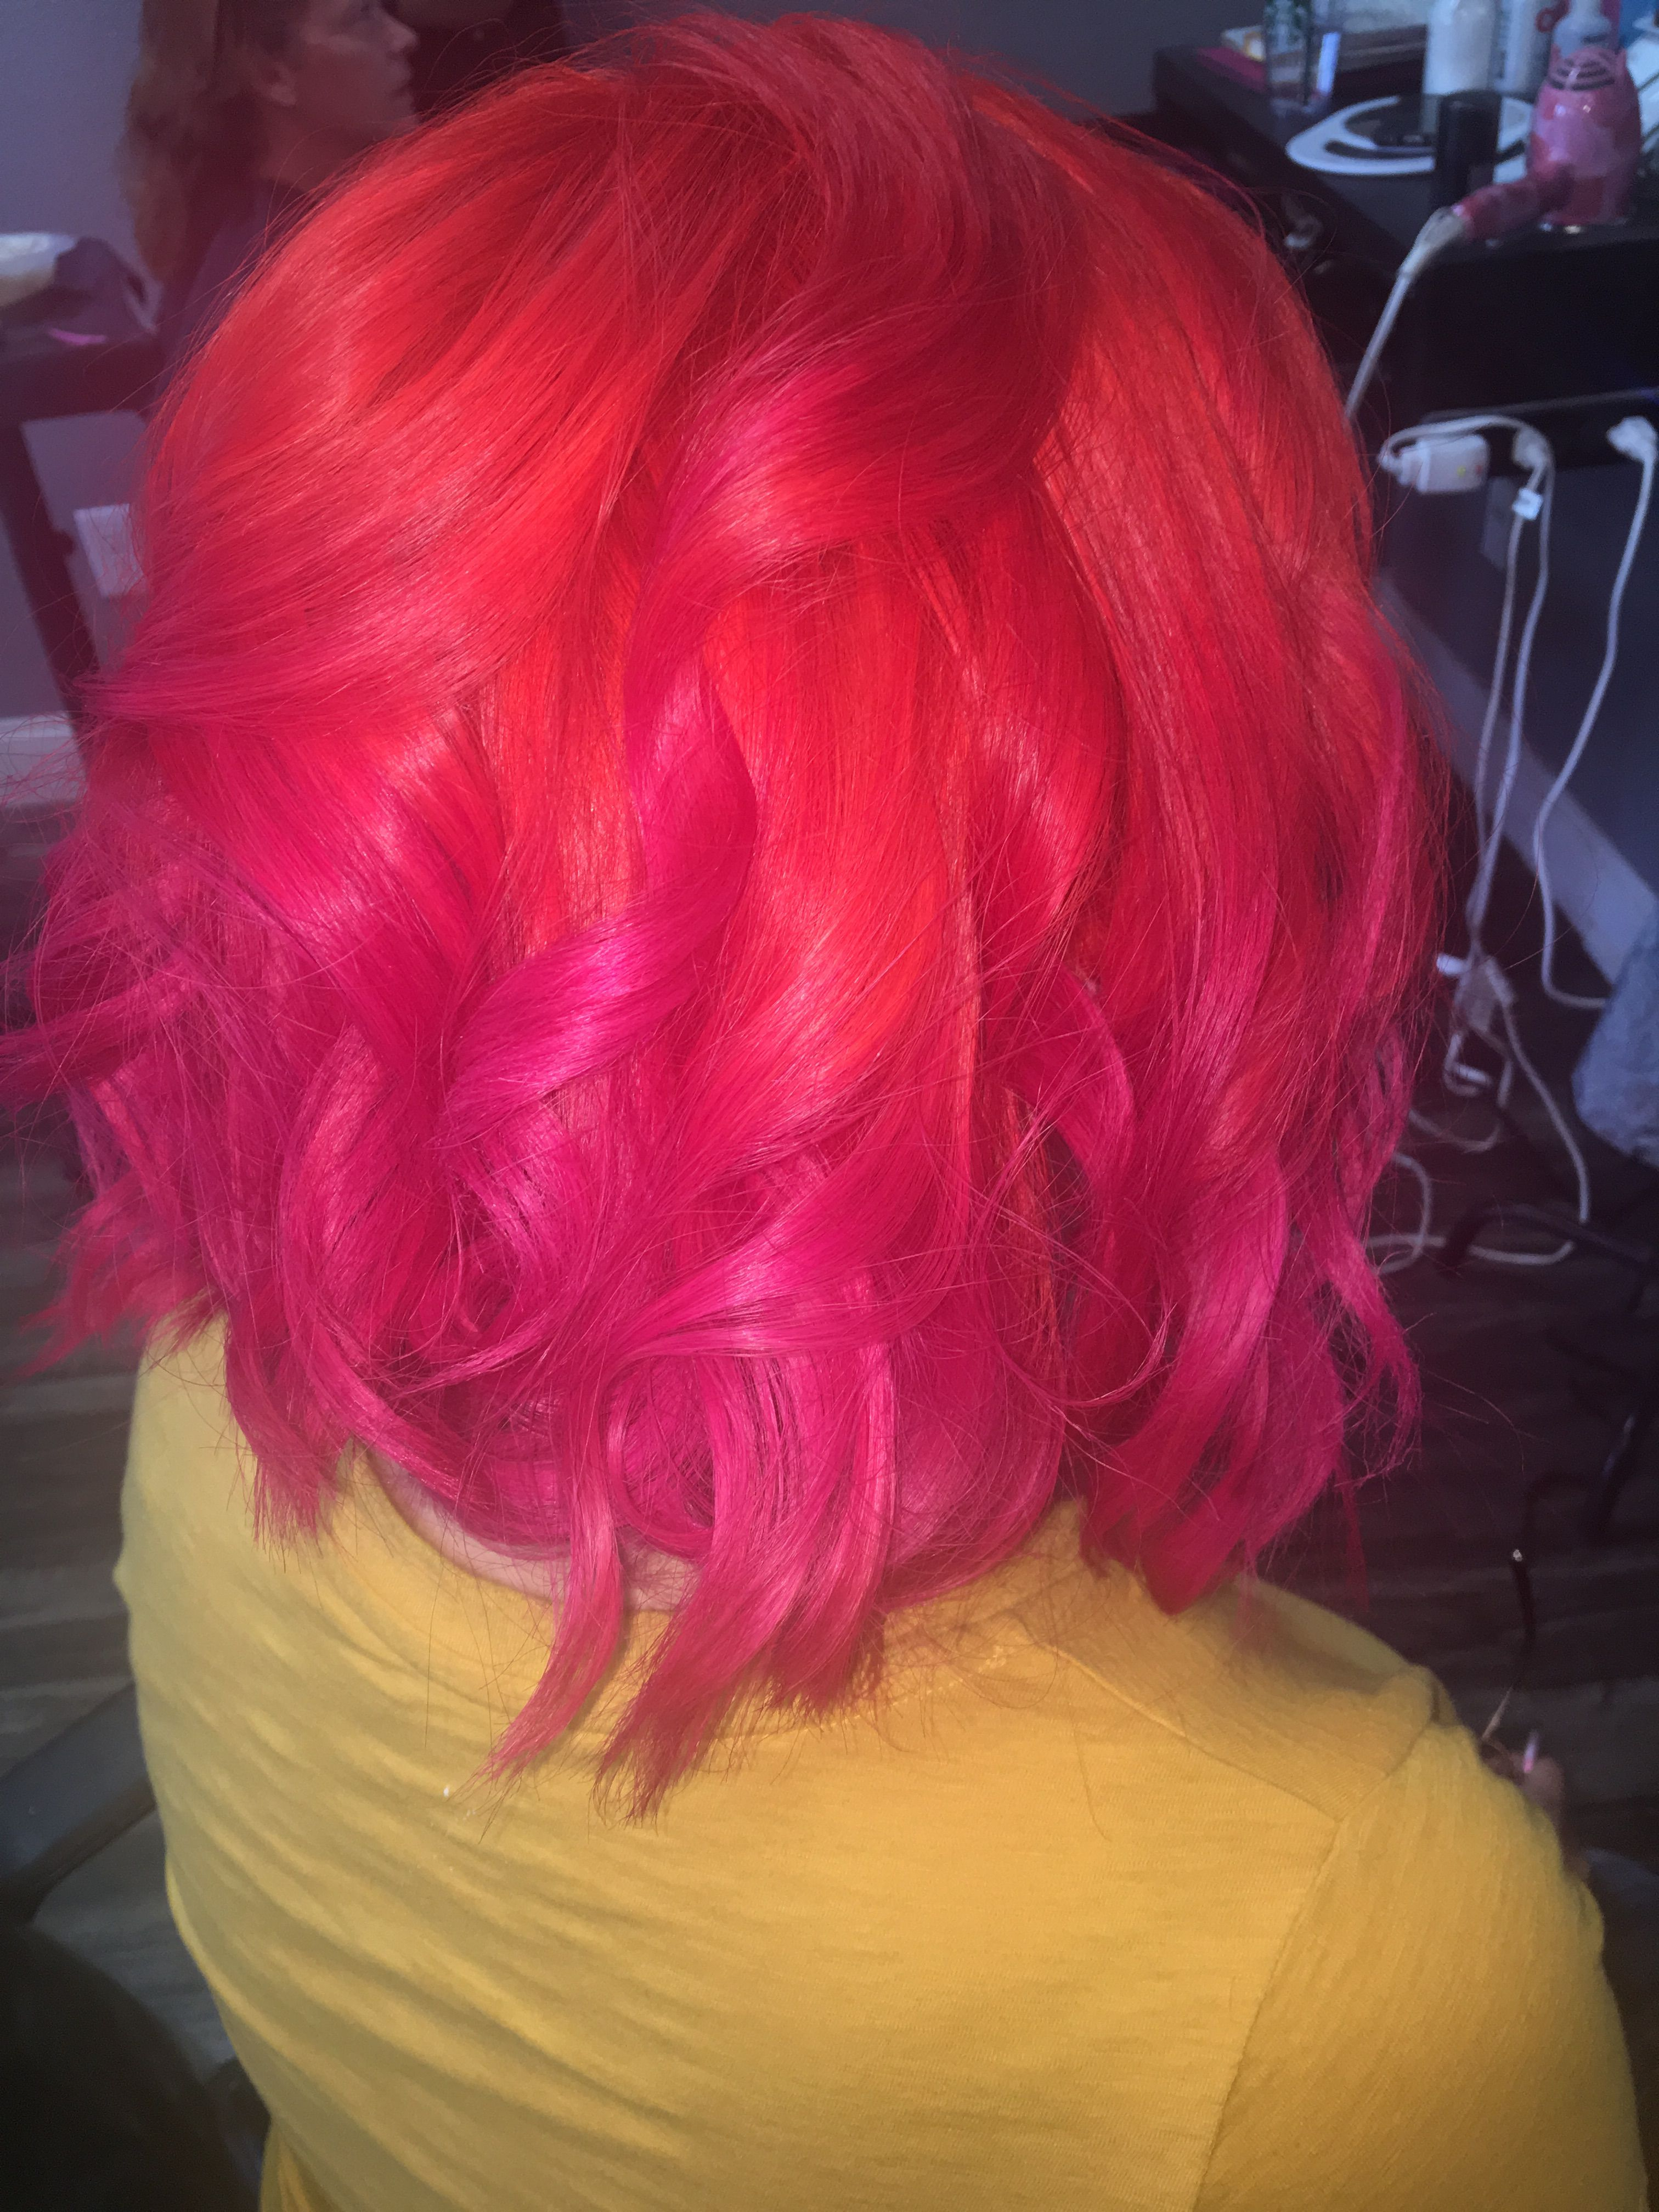 Orange Hair And Pink Hair Arctic Fox Sunset Orange To Virgin Pink No Dilution Or Mix Color Melted Hair B Arctic Fox Hair Color Color Melting Hair Pink Hair